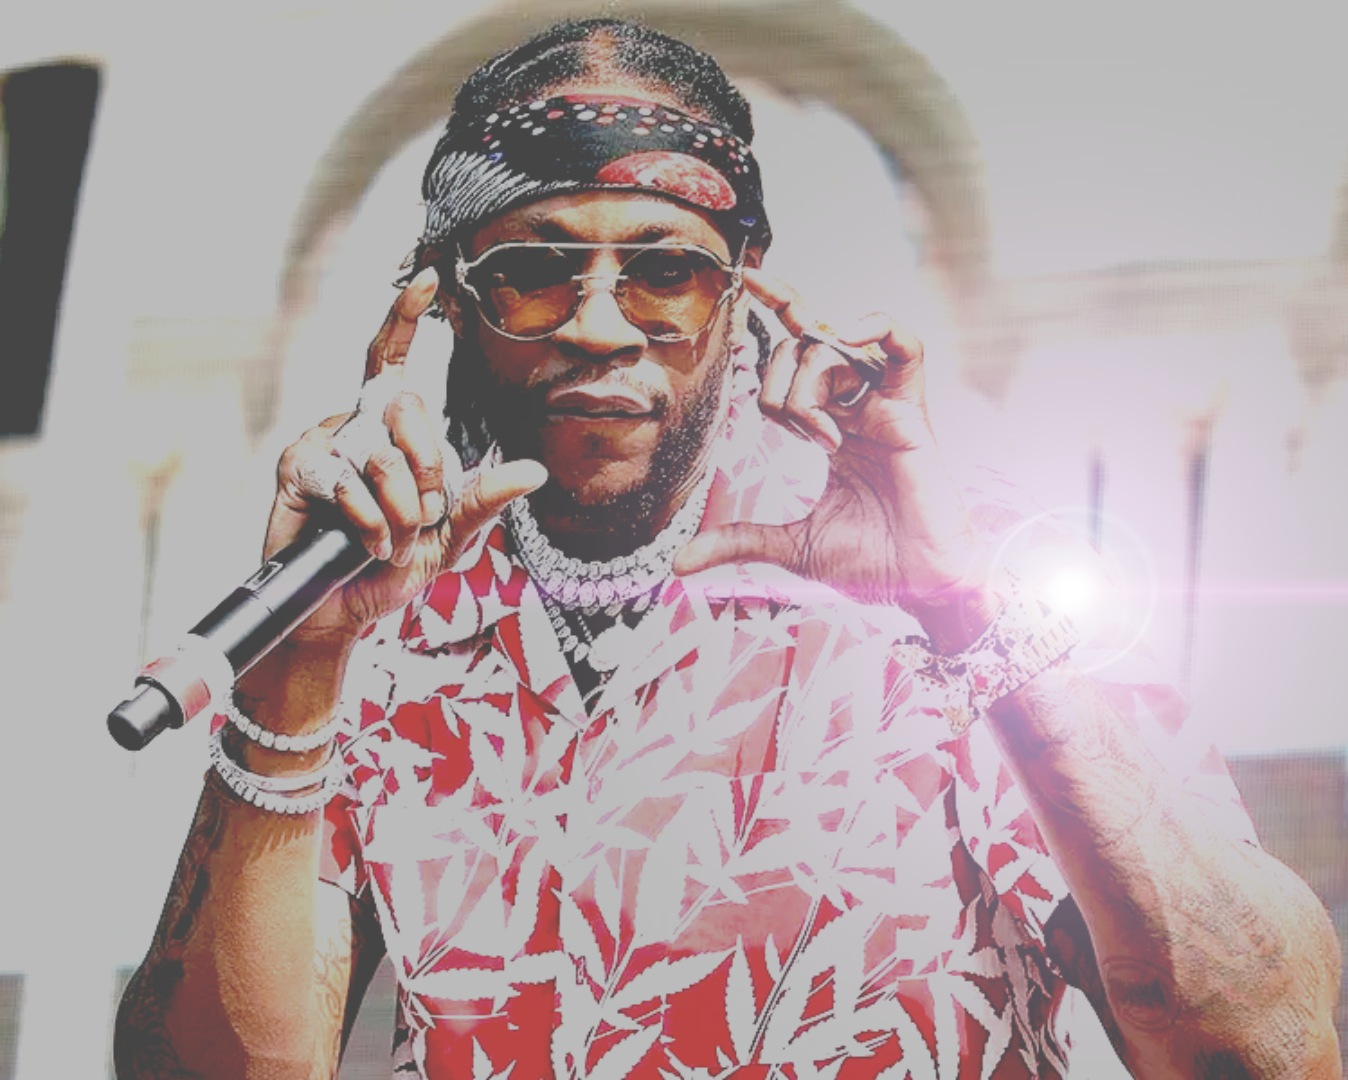 2 Chainz Networth,Family,Age,Lifestyle,Early,Parents,Wife,Childrens, Education Full Biography